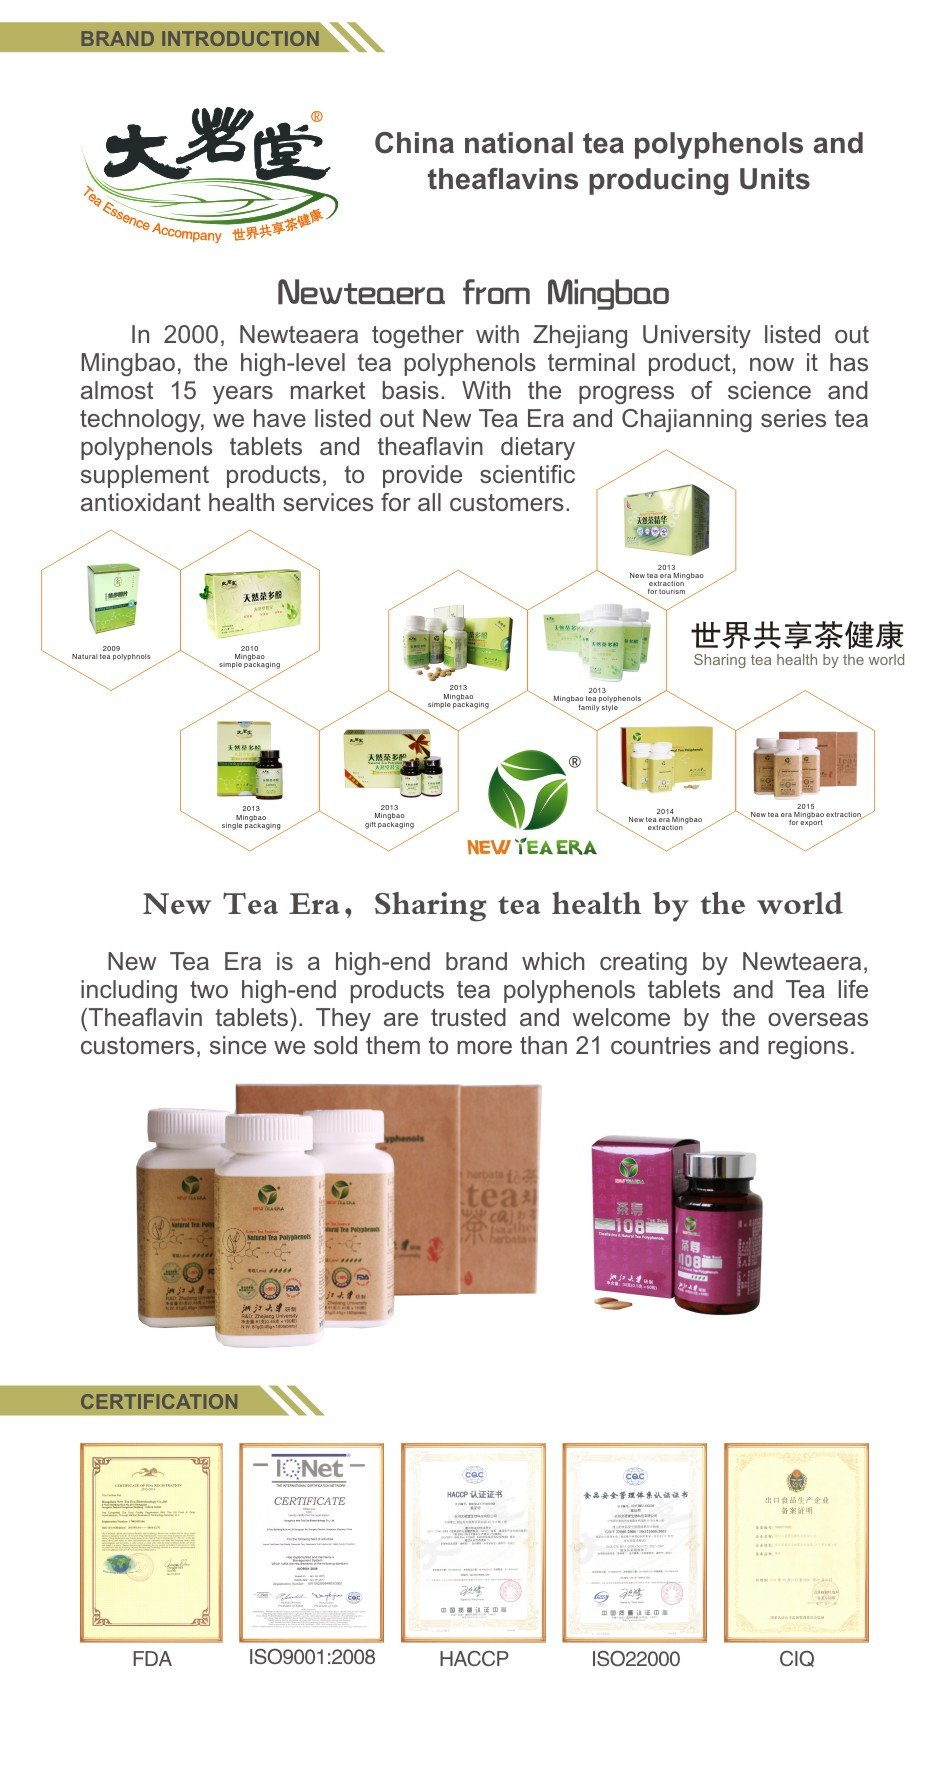 Tea Polyphenols of Mingbao Chinese Green Tea Extract 450mg X 540 T, 98% Total Polyphenols, 60% Egcg Super Antioxidan